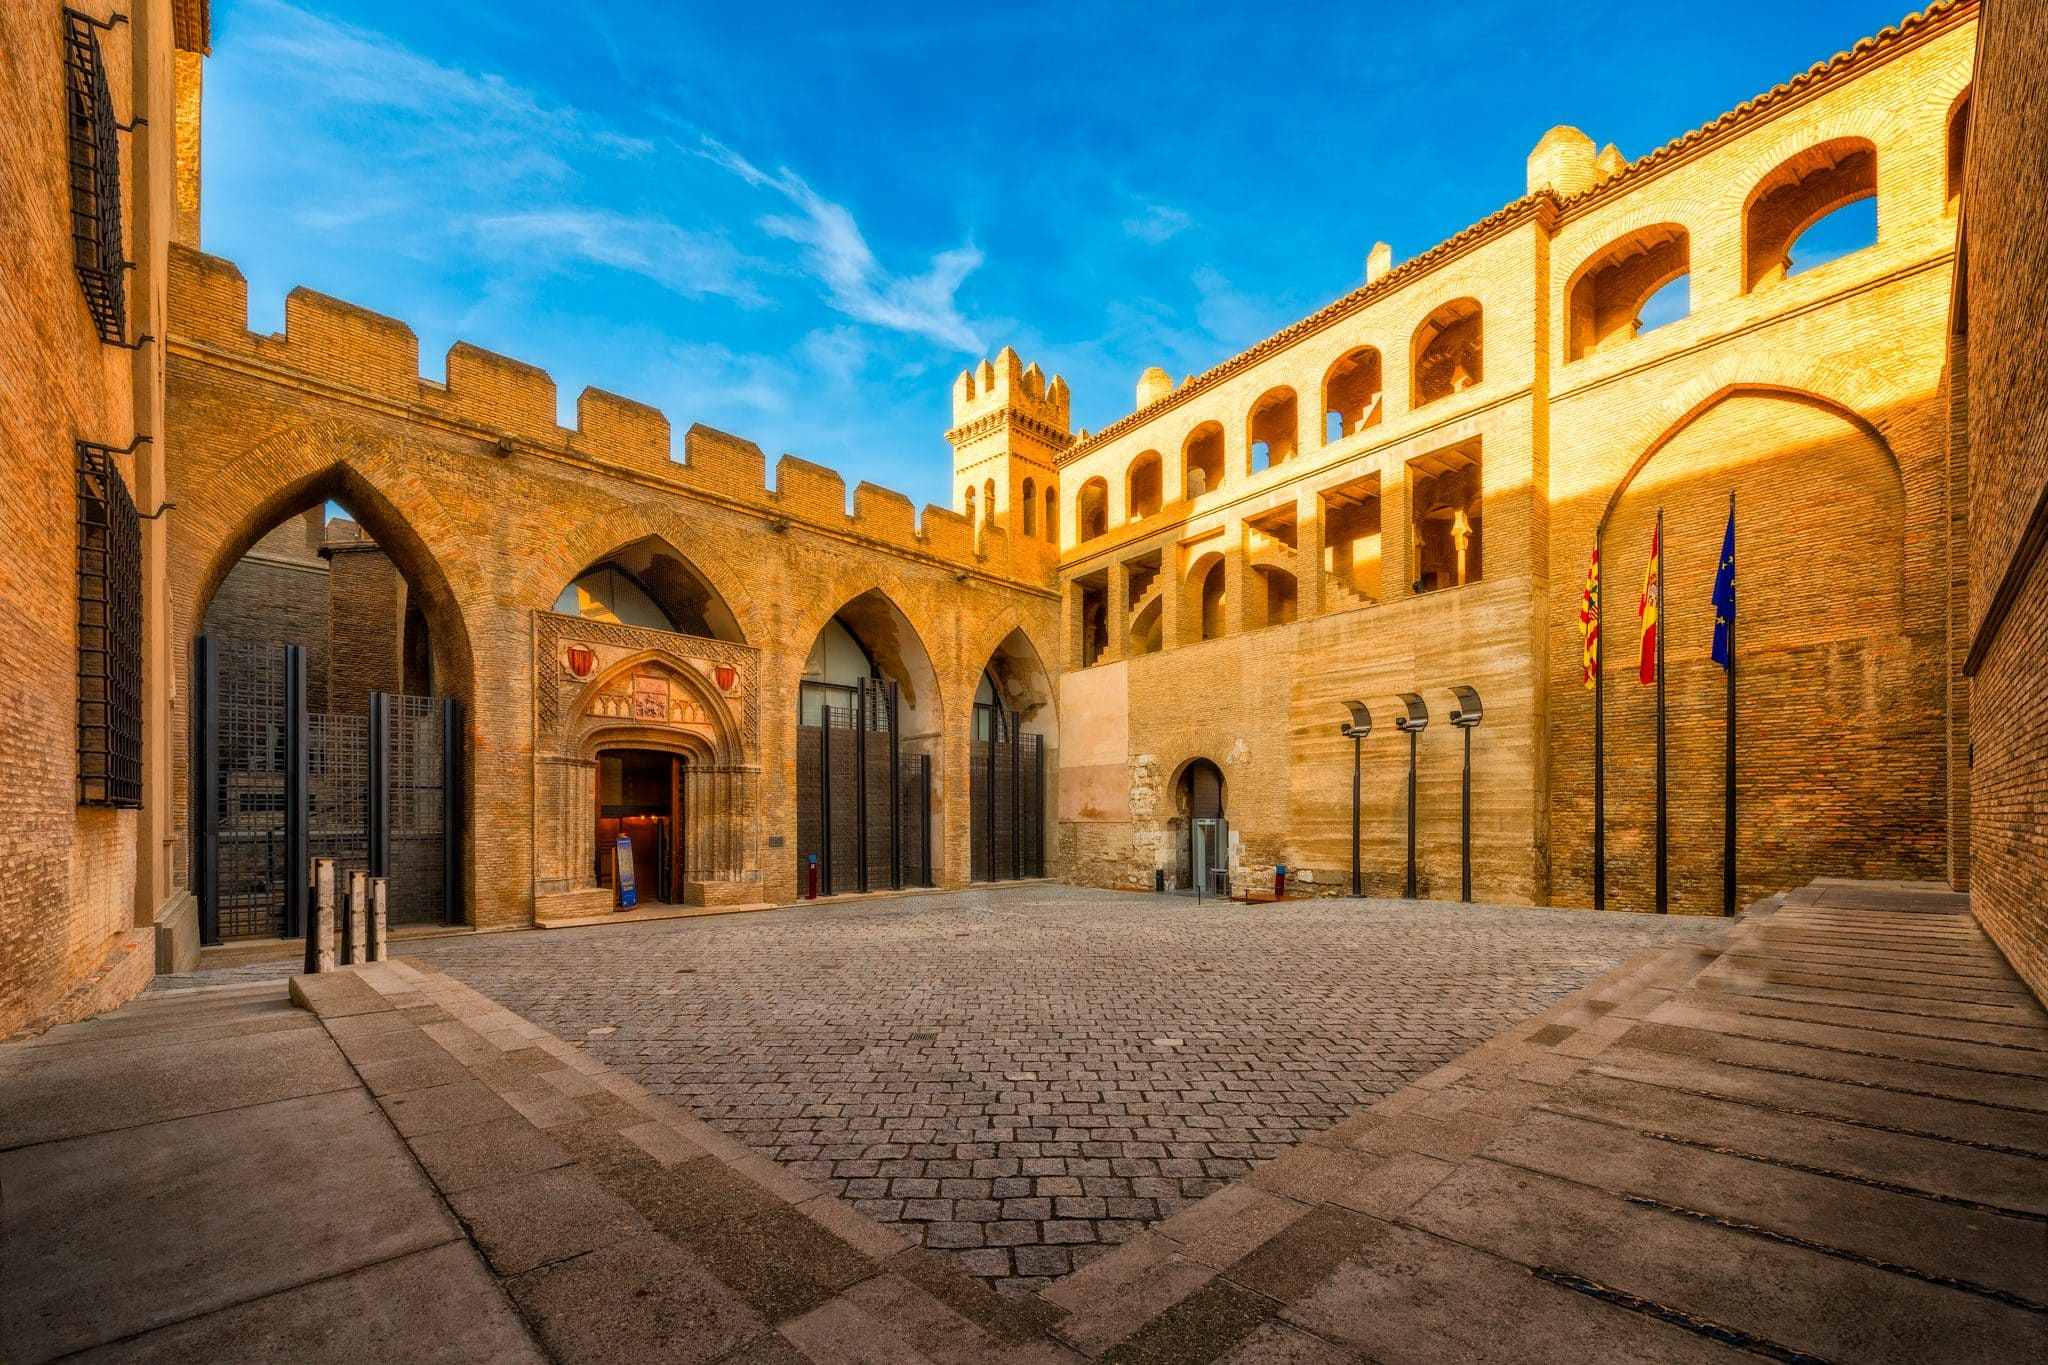 Aljaferia Palace and different architecture styles in Zaragoza, Spain.